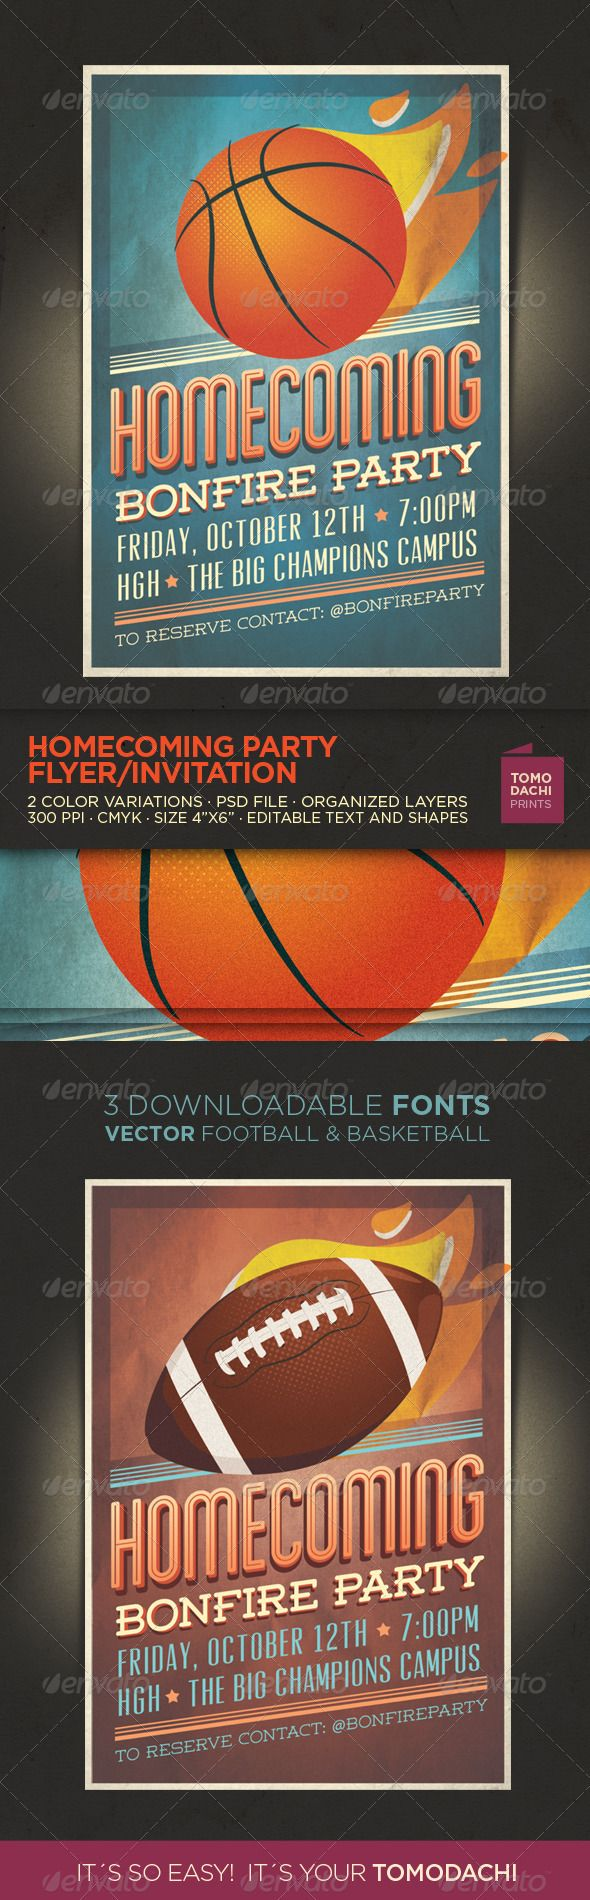 Homecoming Flyer Invitation Fonts Graphic Design Inspiration